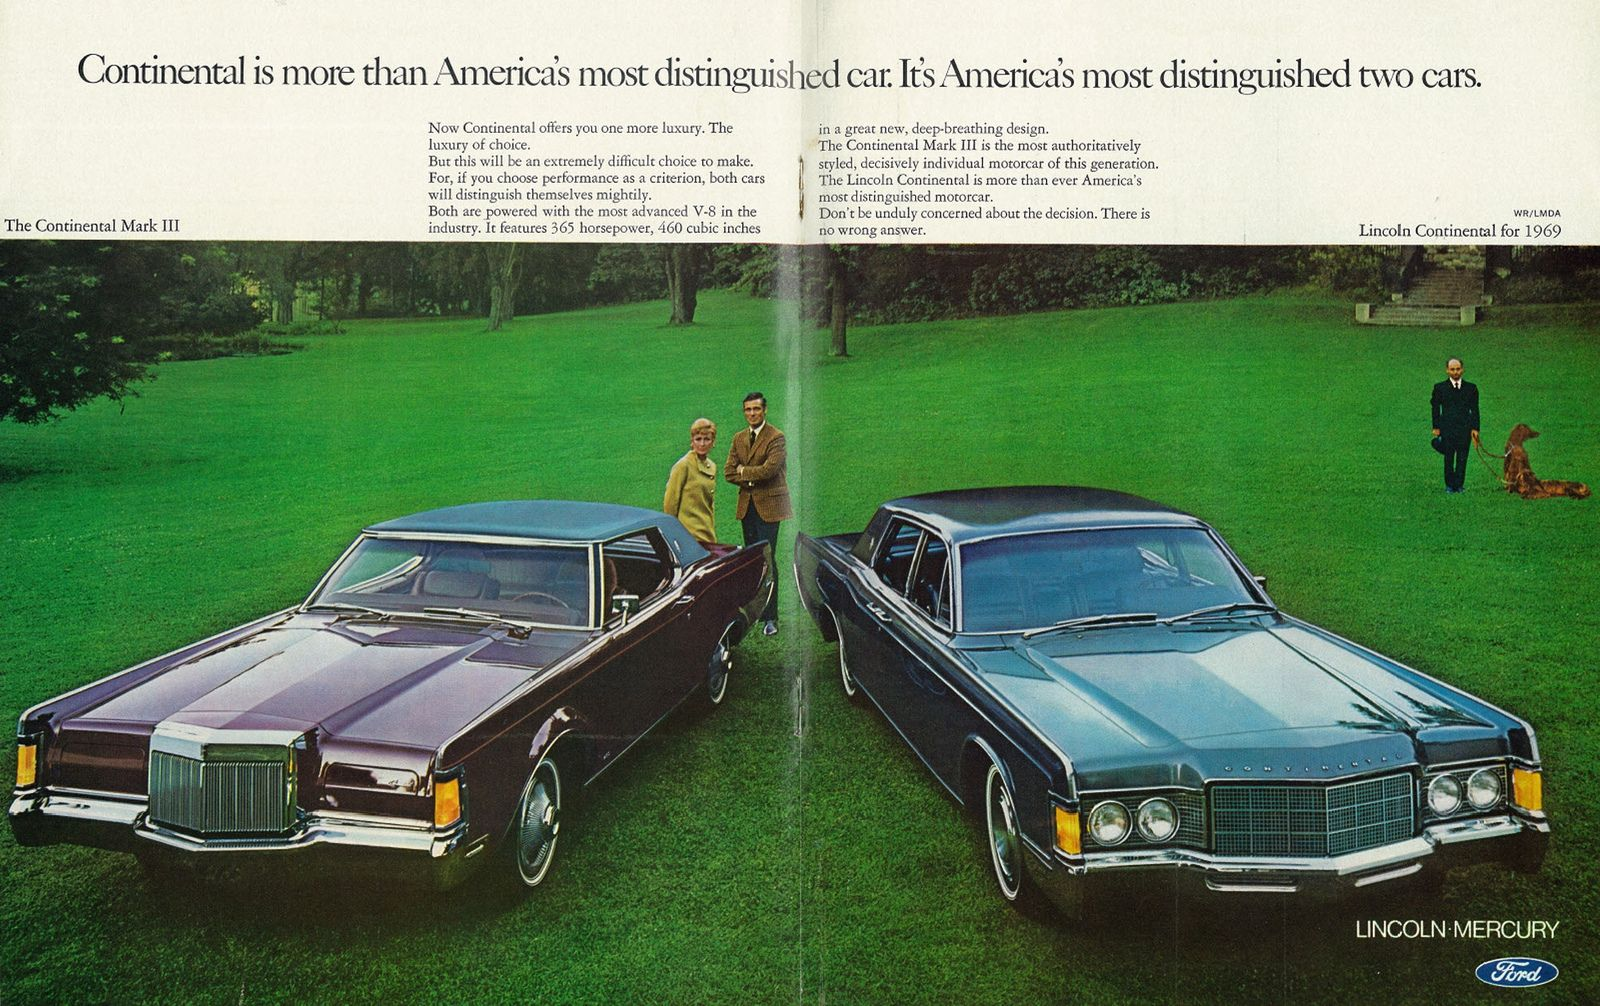 1969 car ad continental mark iii and lincoln continental lincoln mercury ford 2 page advert lincoln continental car ads lincoln mercury 1969 car ad continental mark iii and